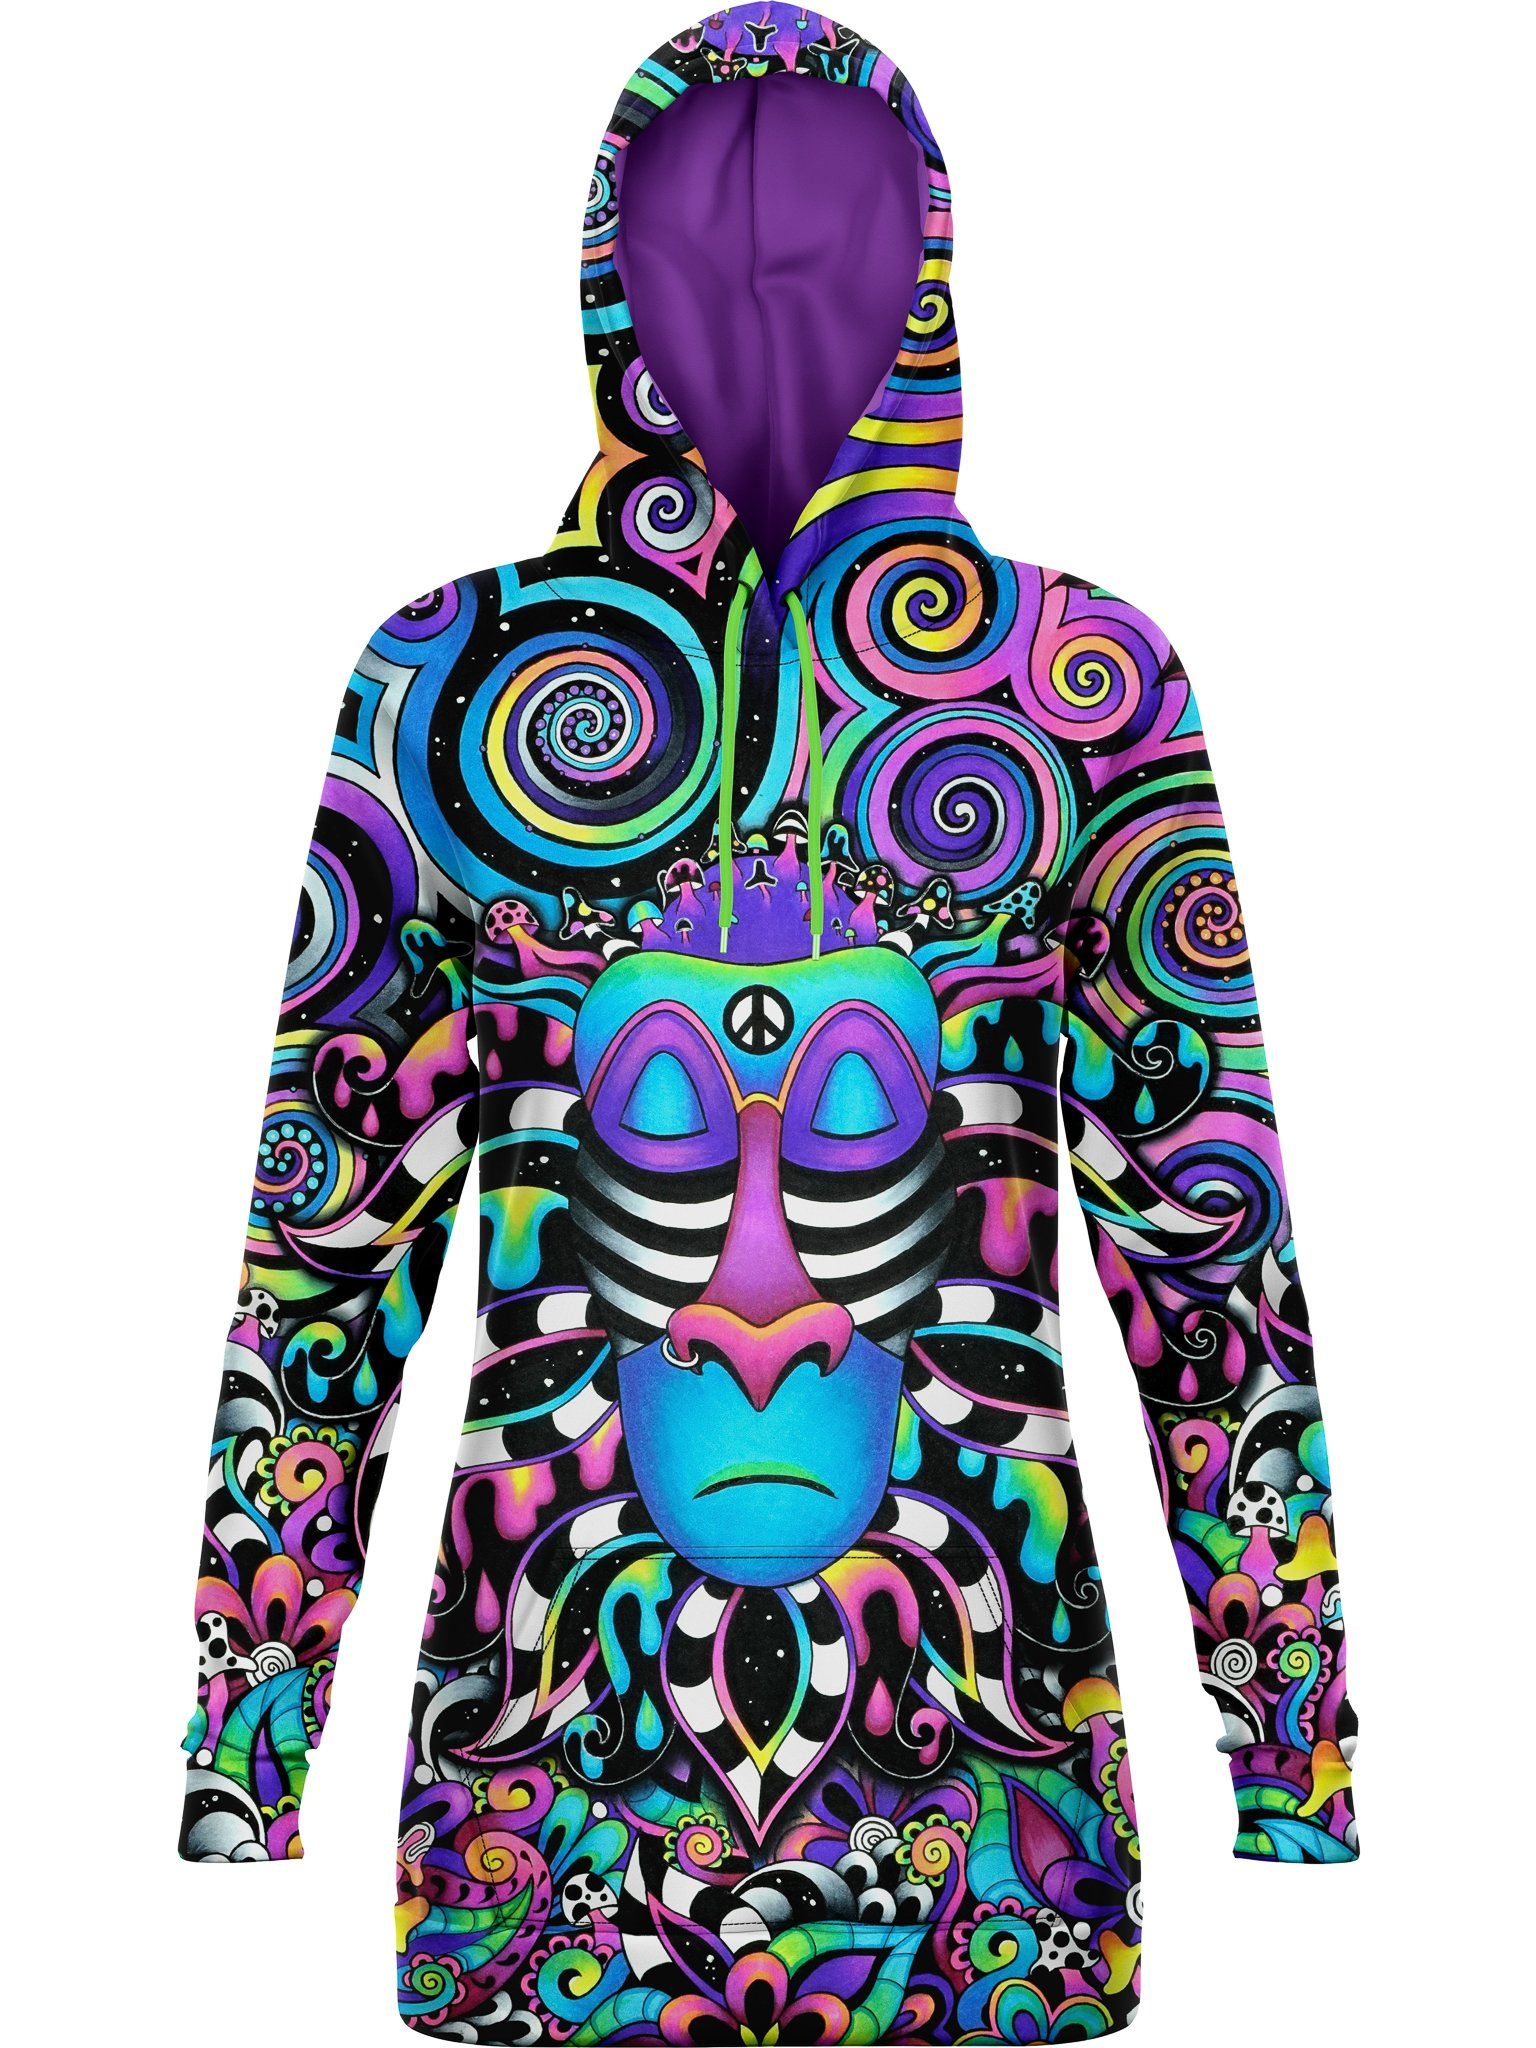 Tripfiki Hooded Dress Hoodie Dress Electro Threads